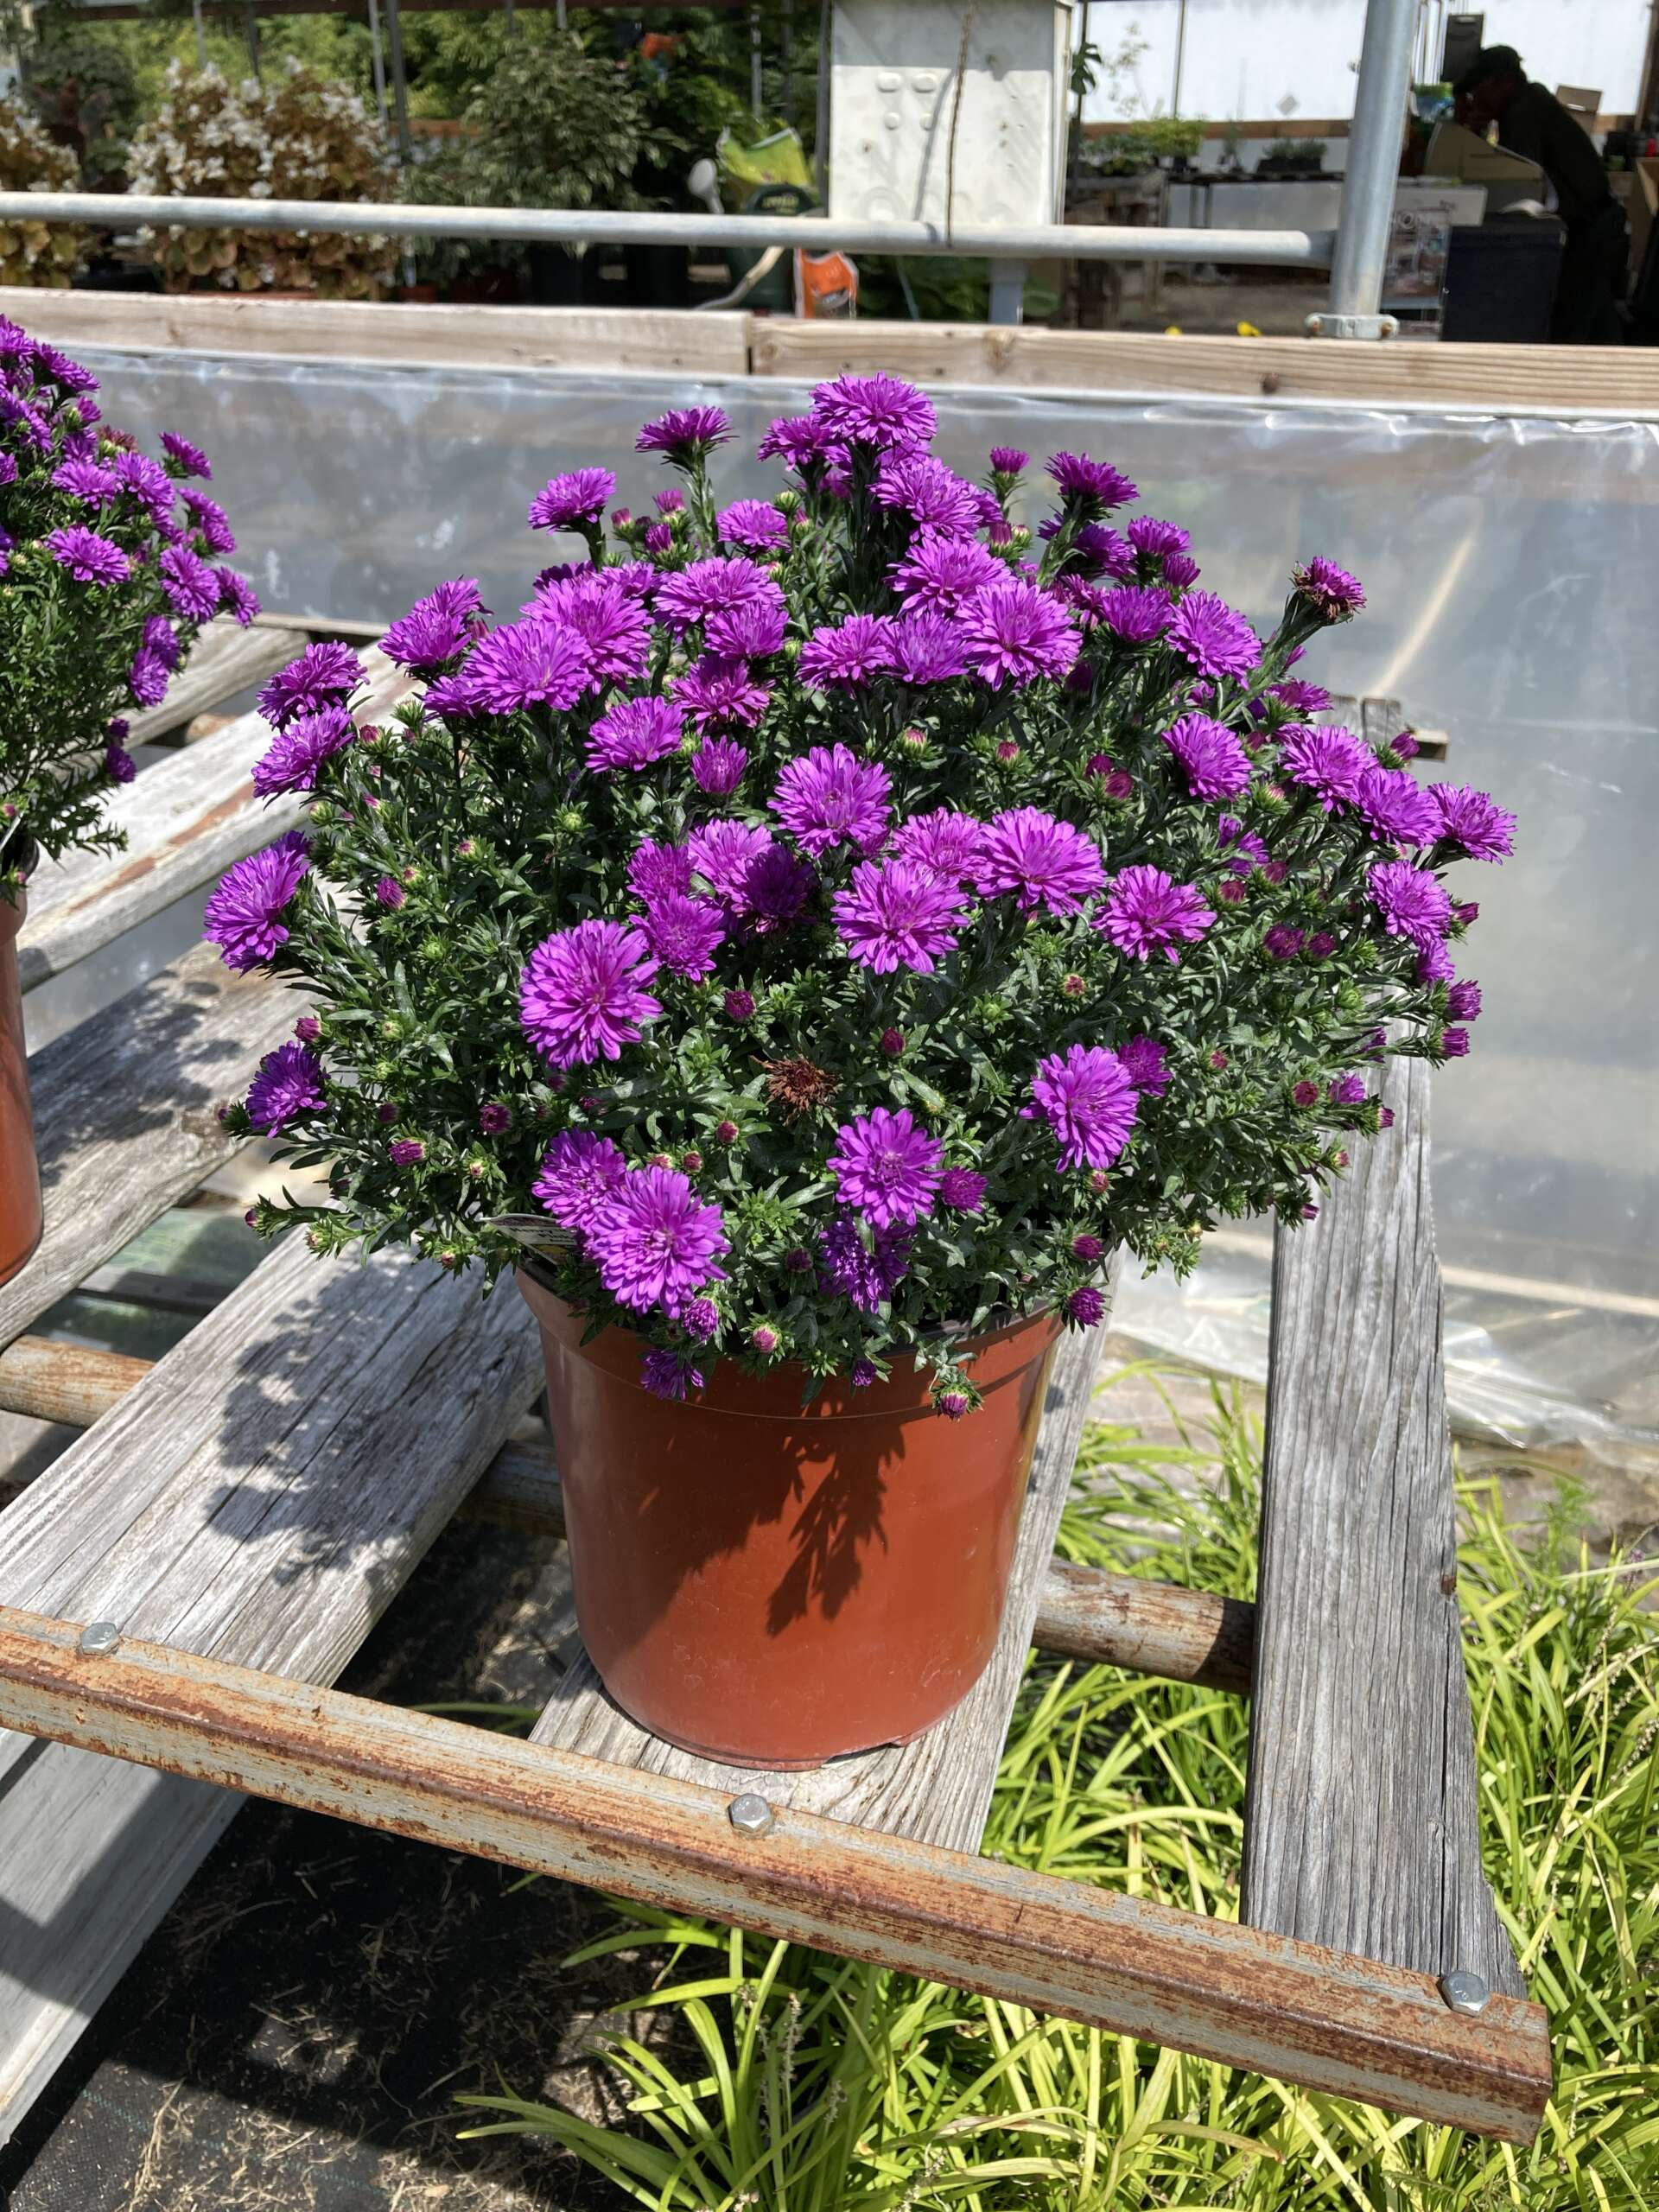 Purple Aster blooming in a pot